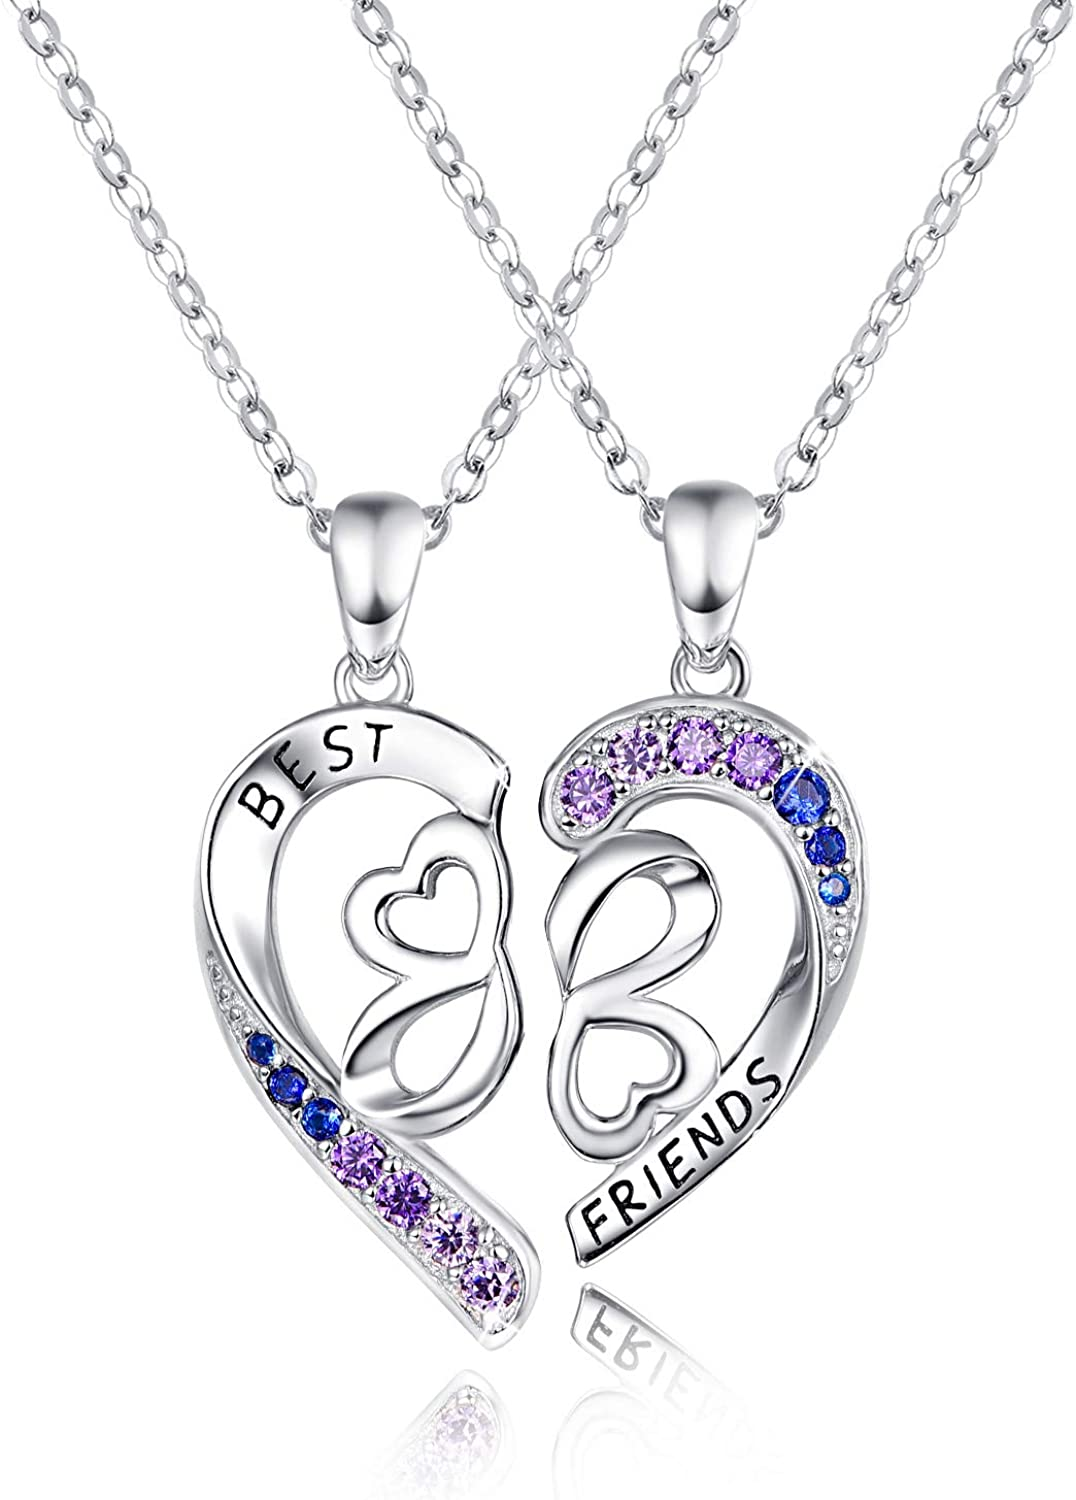 Friendship Pendant Familyjewelry Silver Silverpendant Heart Gift for her Valentine Love Necklace